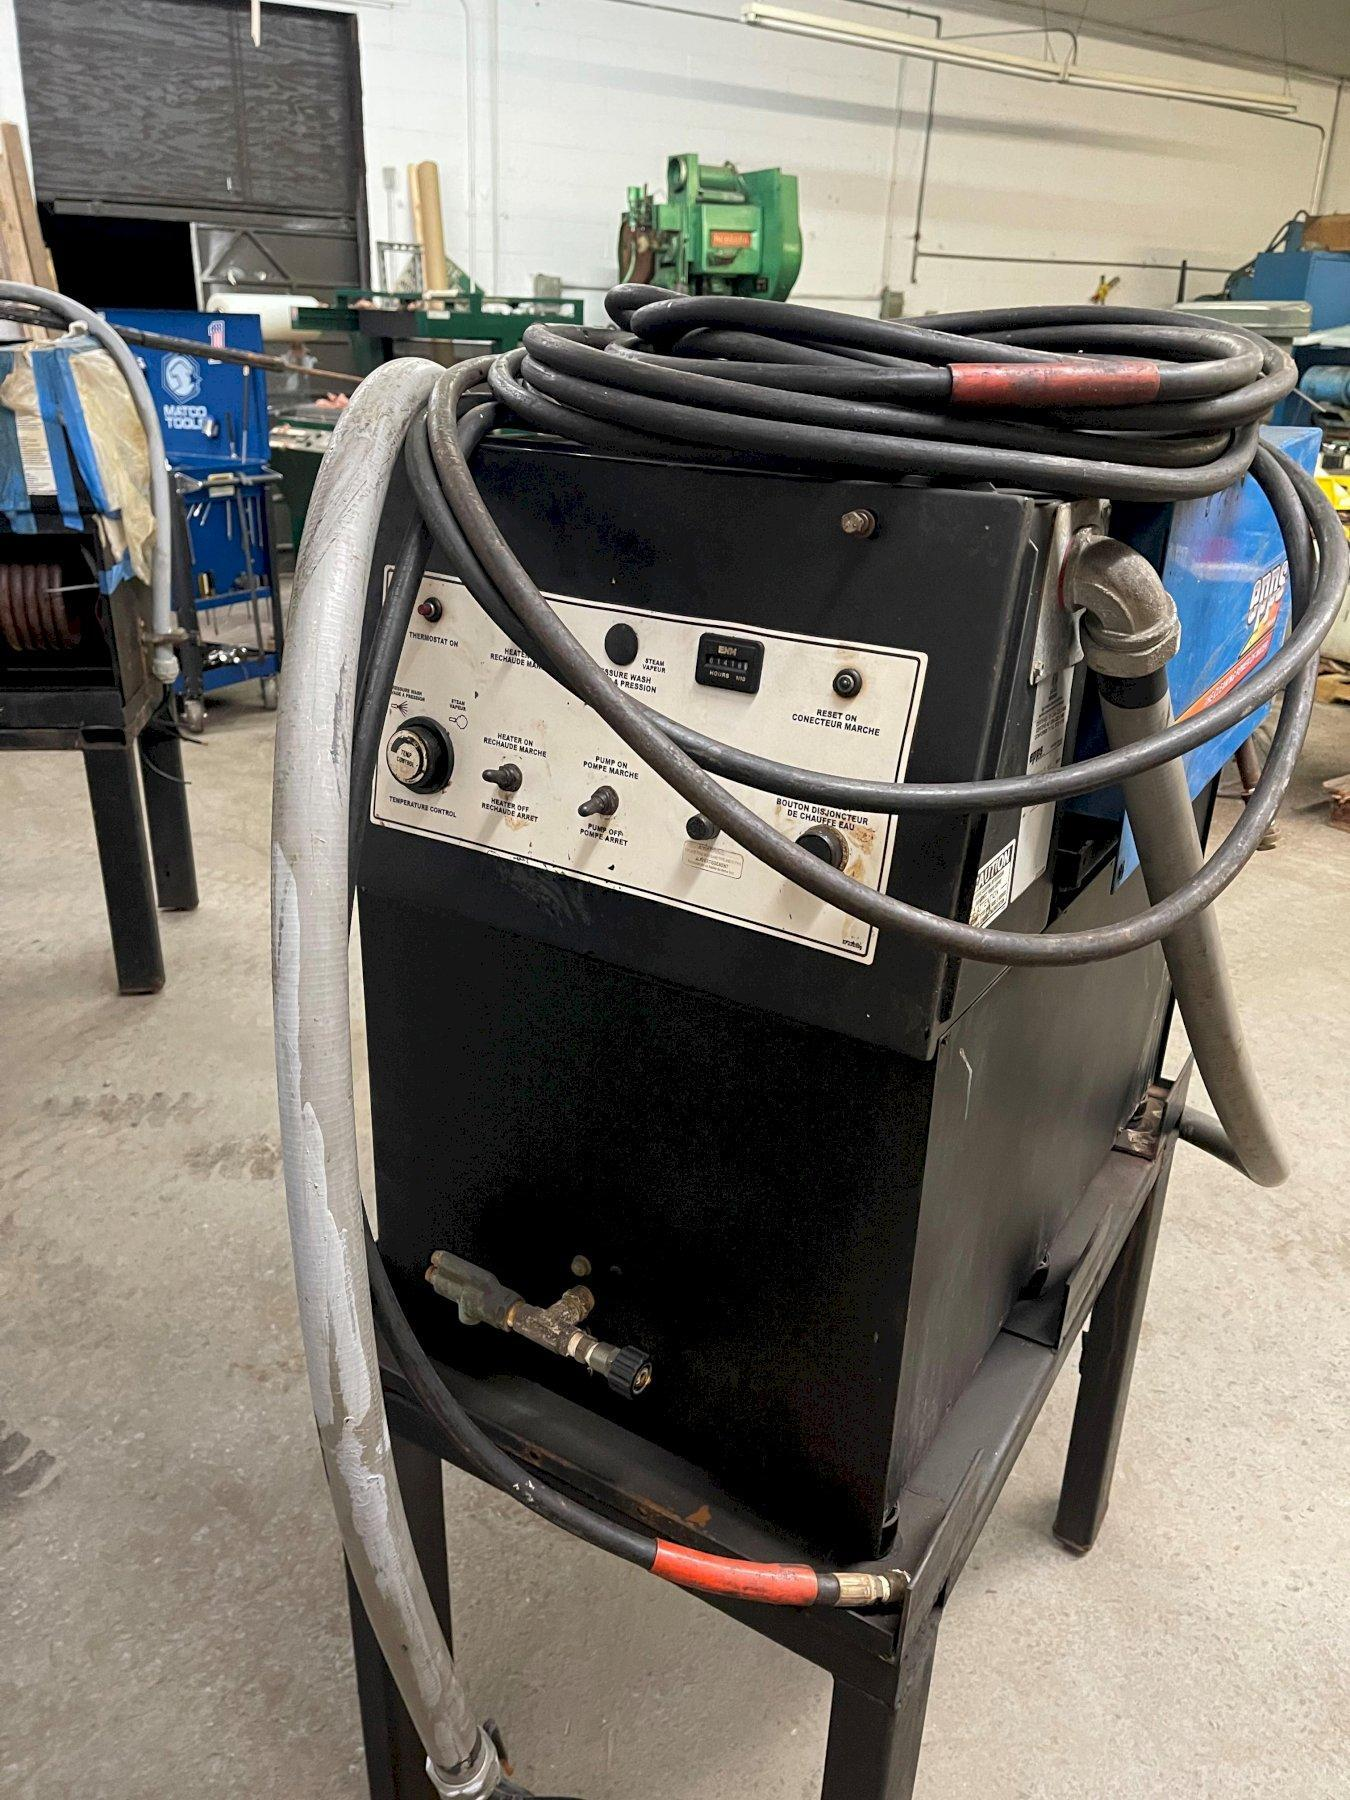 EPPS 3550P-72 Pressure Washers Qty. 2, Electrically Heated.